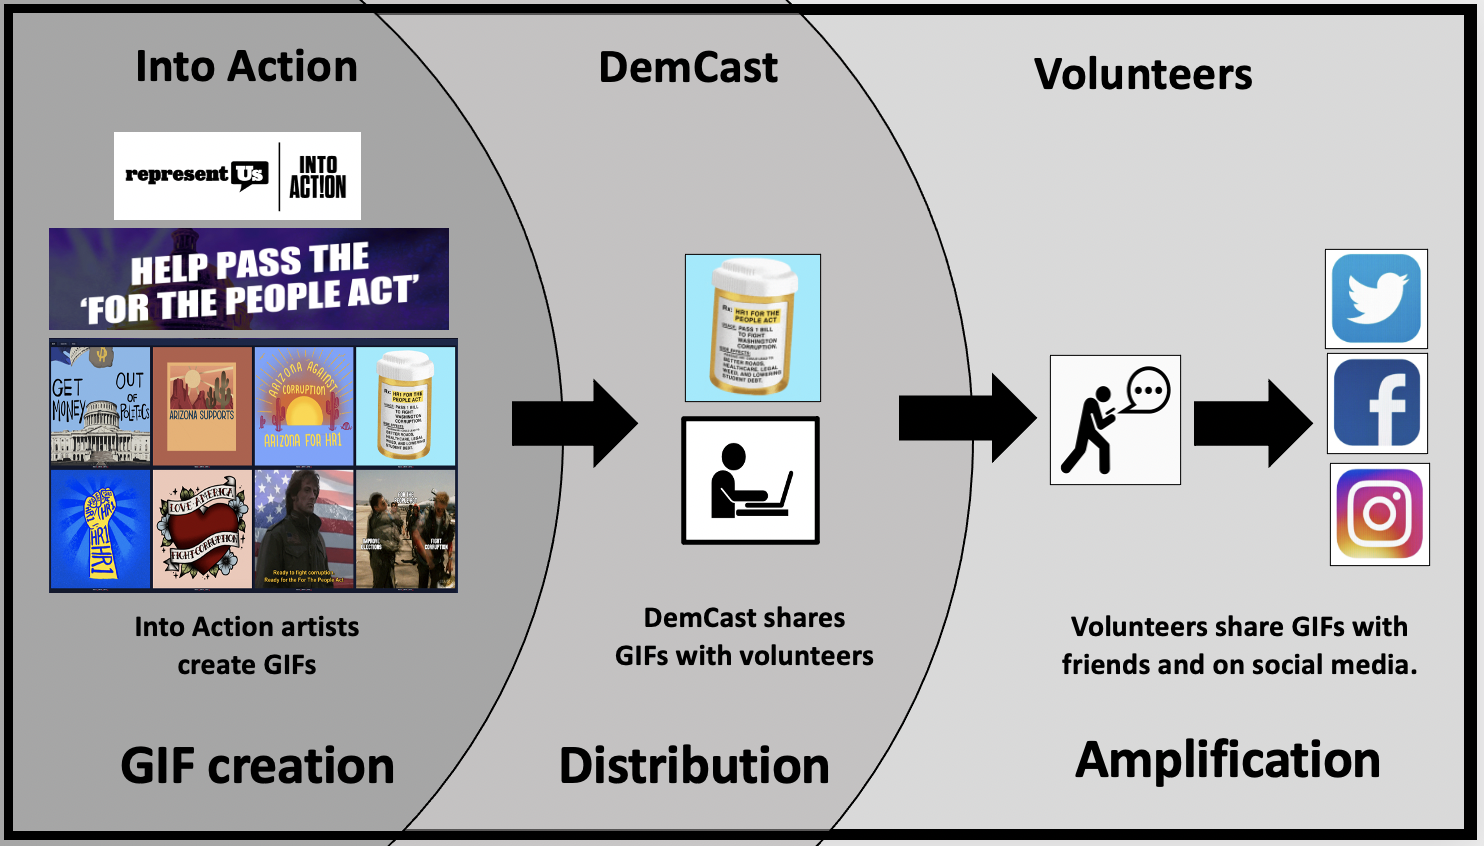 DemCast shares GIFs from Into Action with its volunteers for them to share with their friends and post to social media.